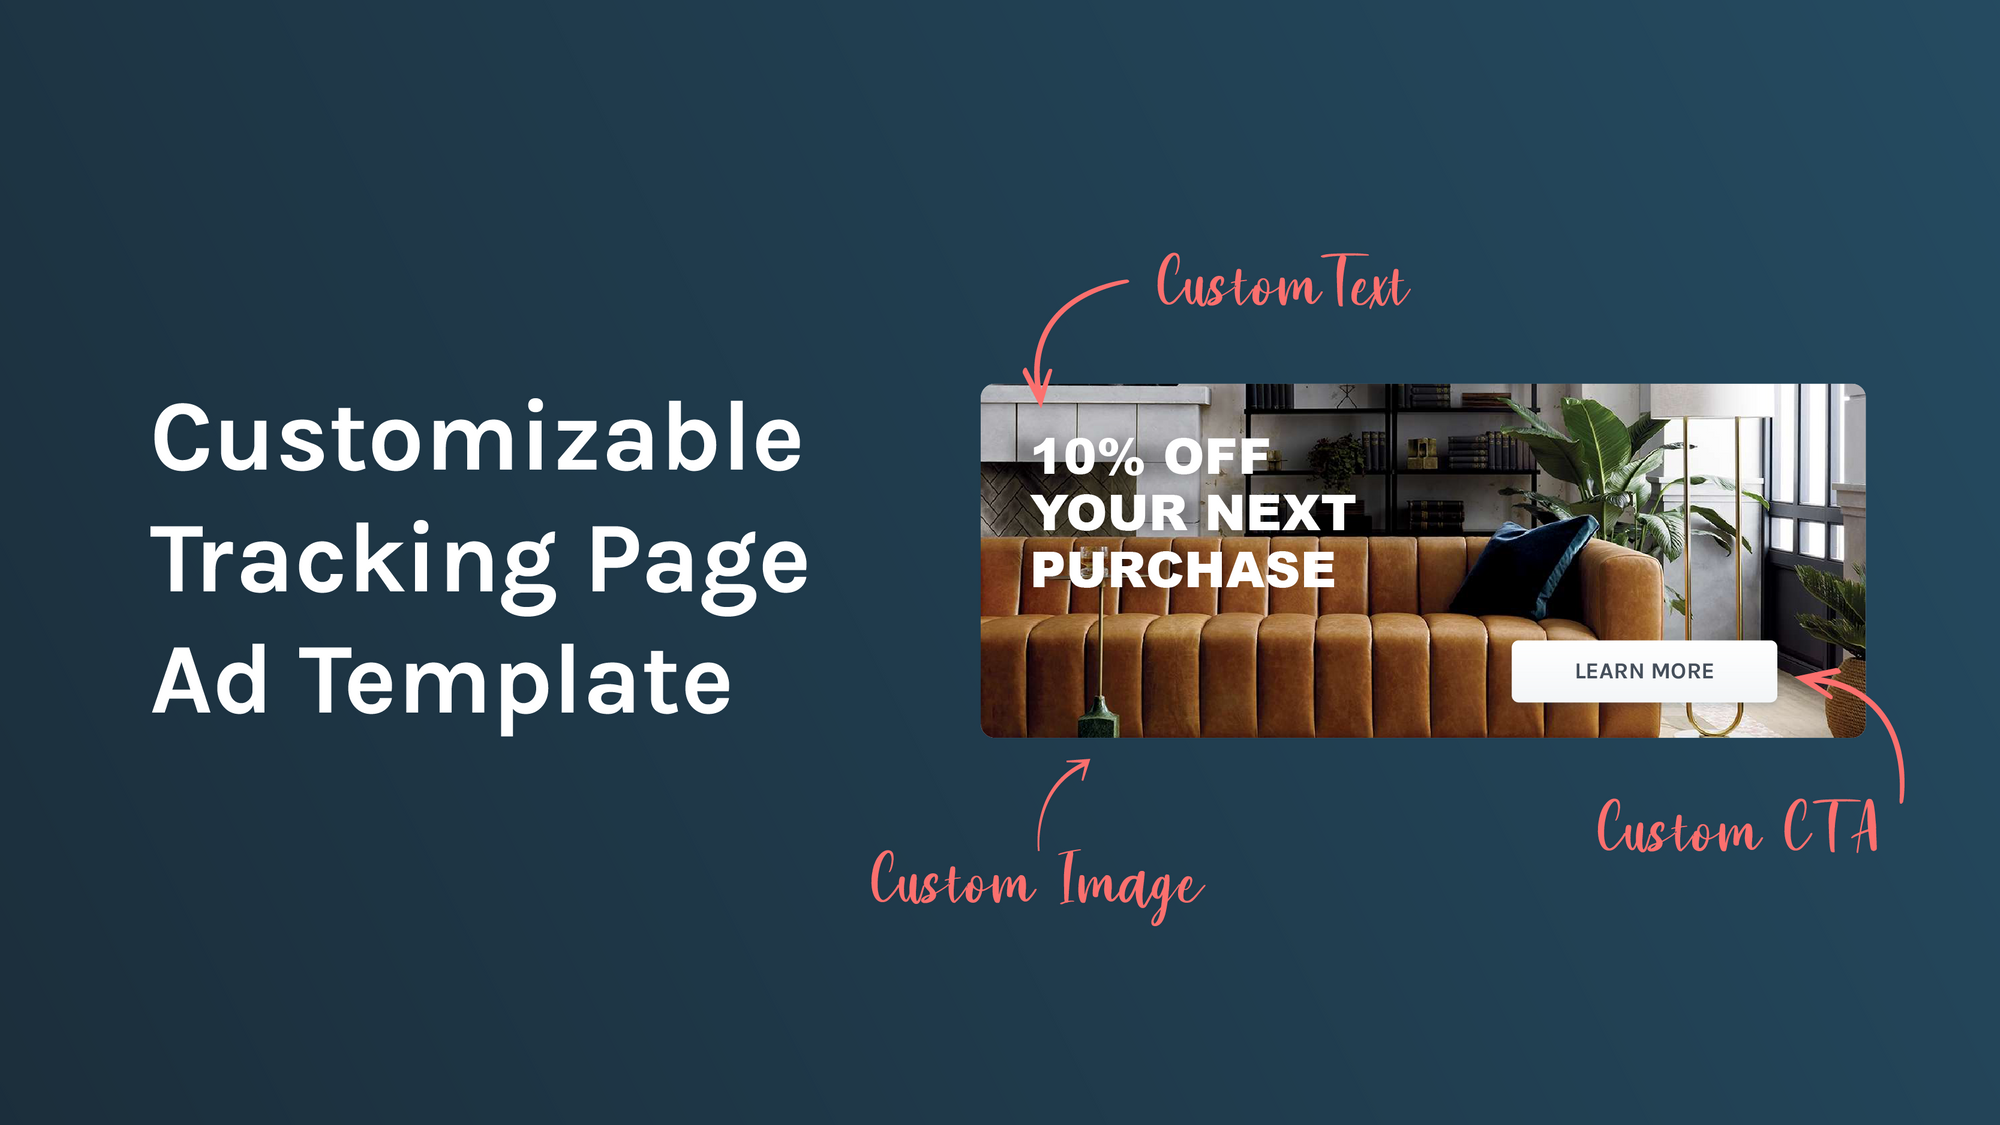 Free Downloadable Customizable Tracking Page Ad Template